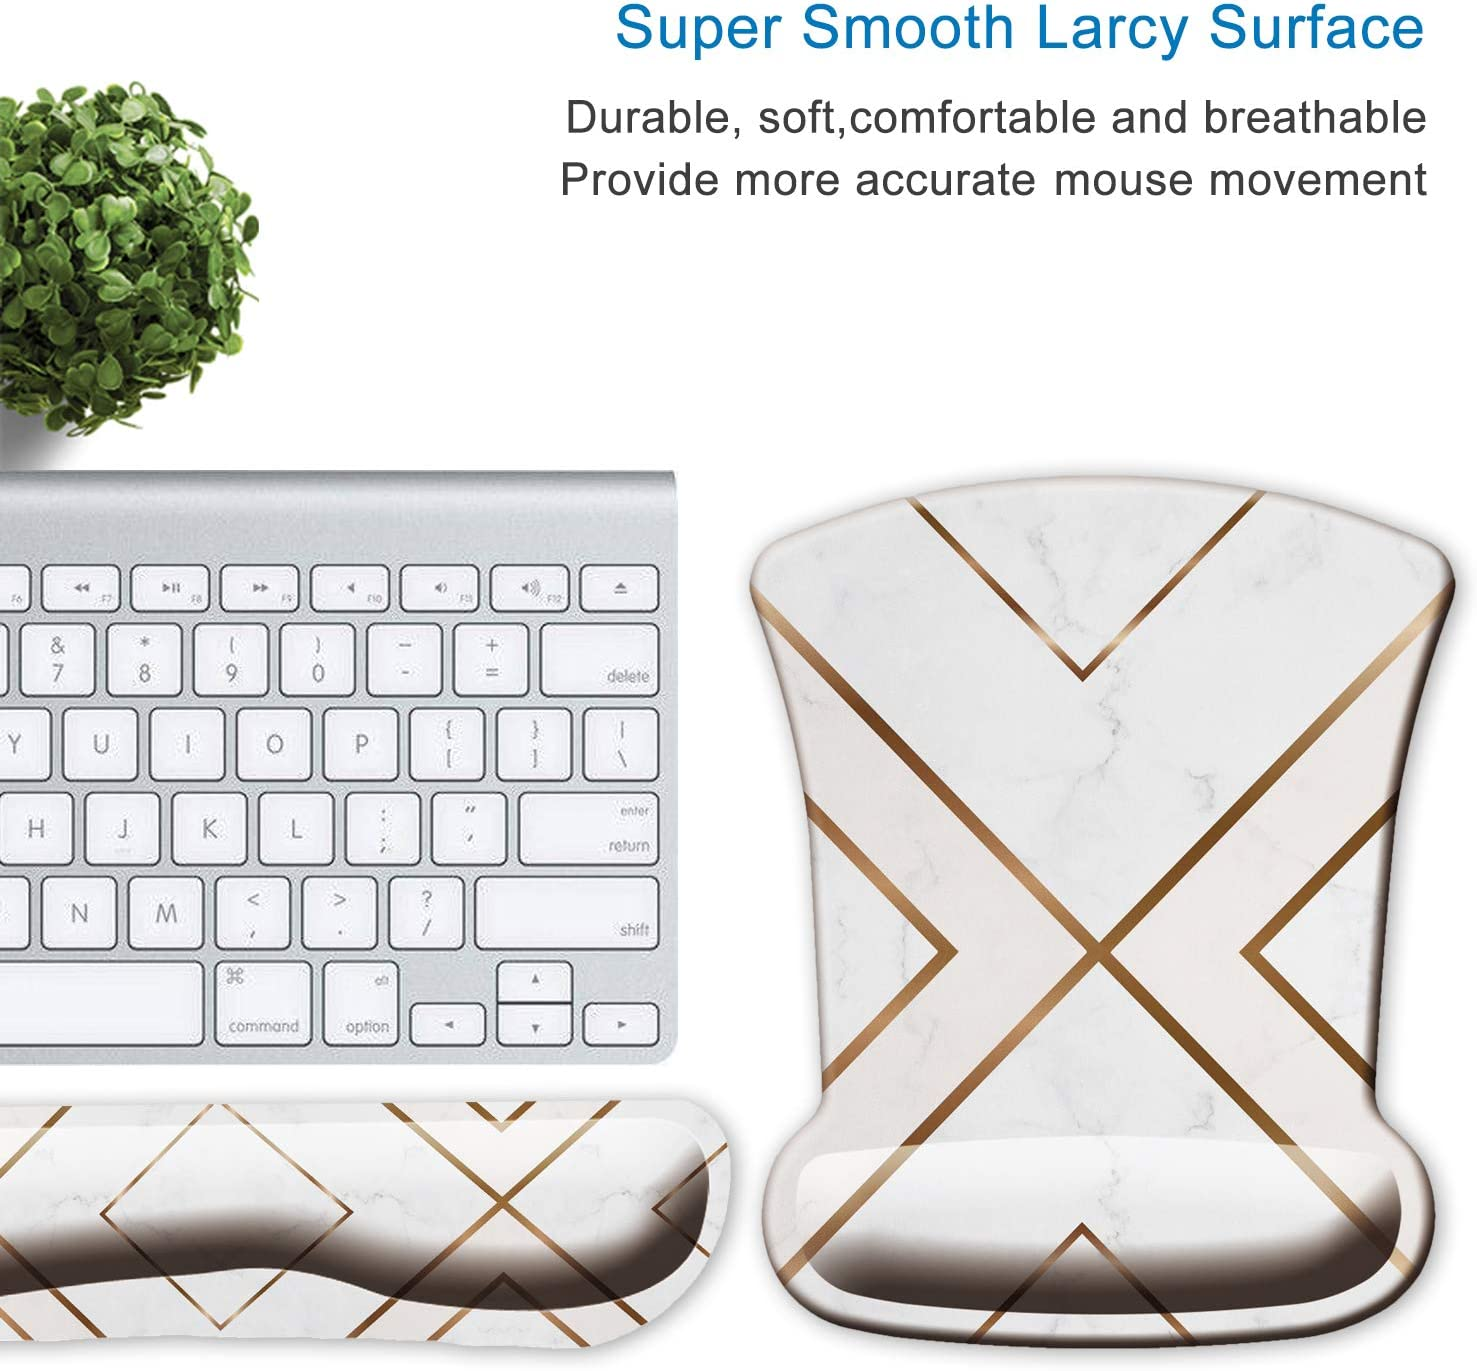 ITNRSIIET Upgraded Ergonomic Keyboard Wrist Rest and Mouse Wrist Rest Pad Set,Cute Modern Gold Cross Line Design for Women Non-Slip Thick Mouse Pad Easy Typing and Wrist Pain Relief